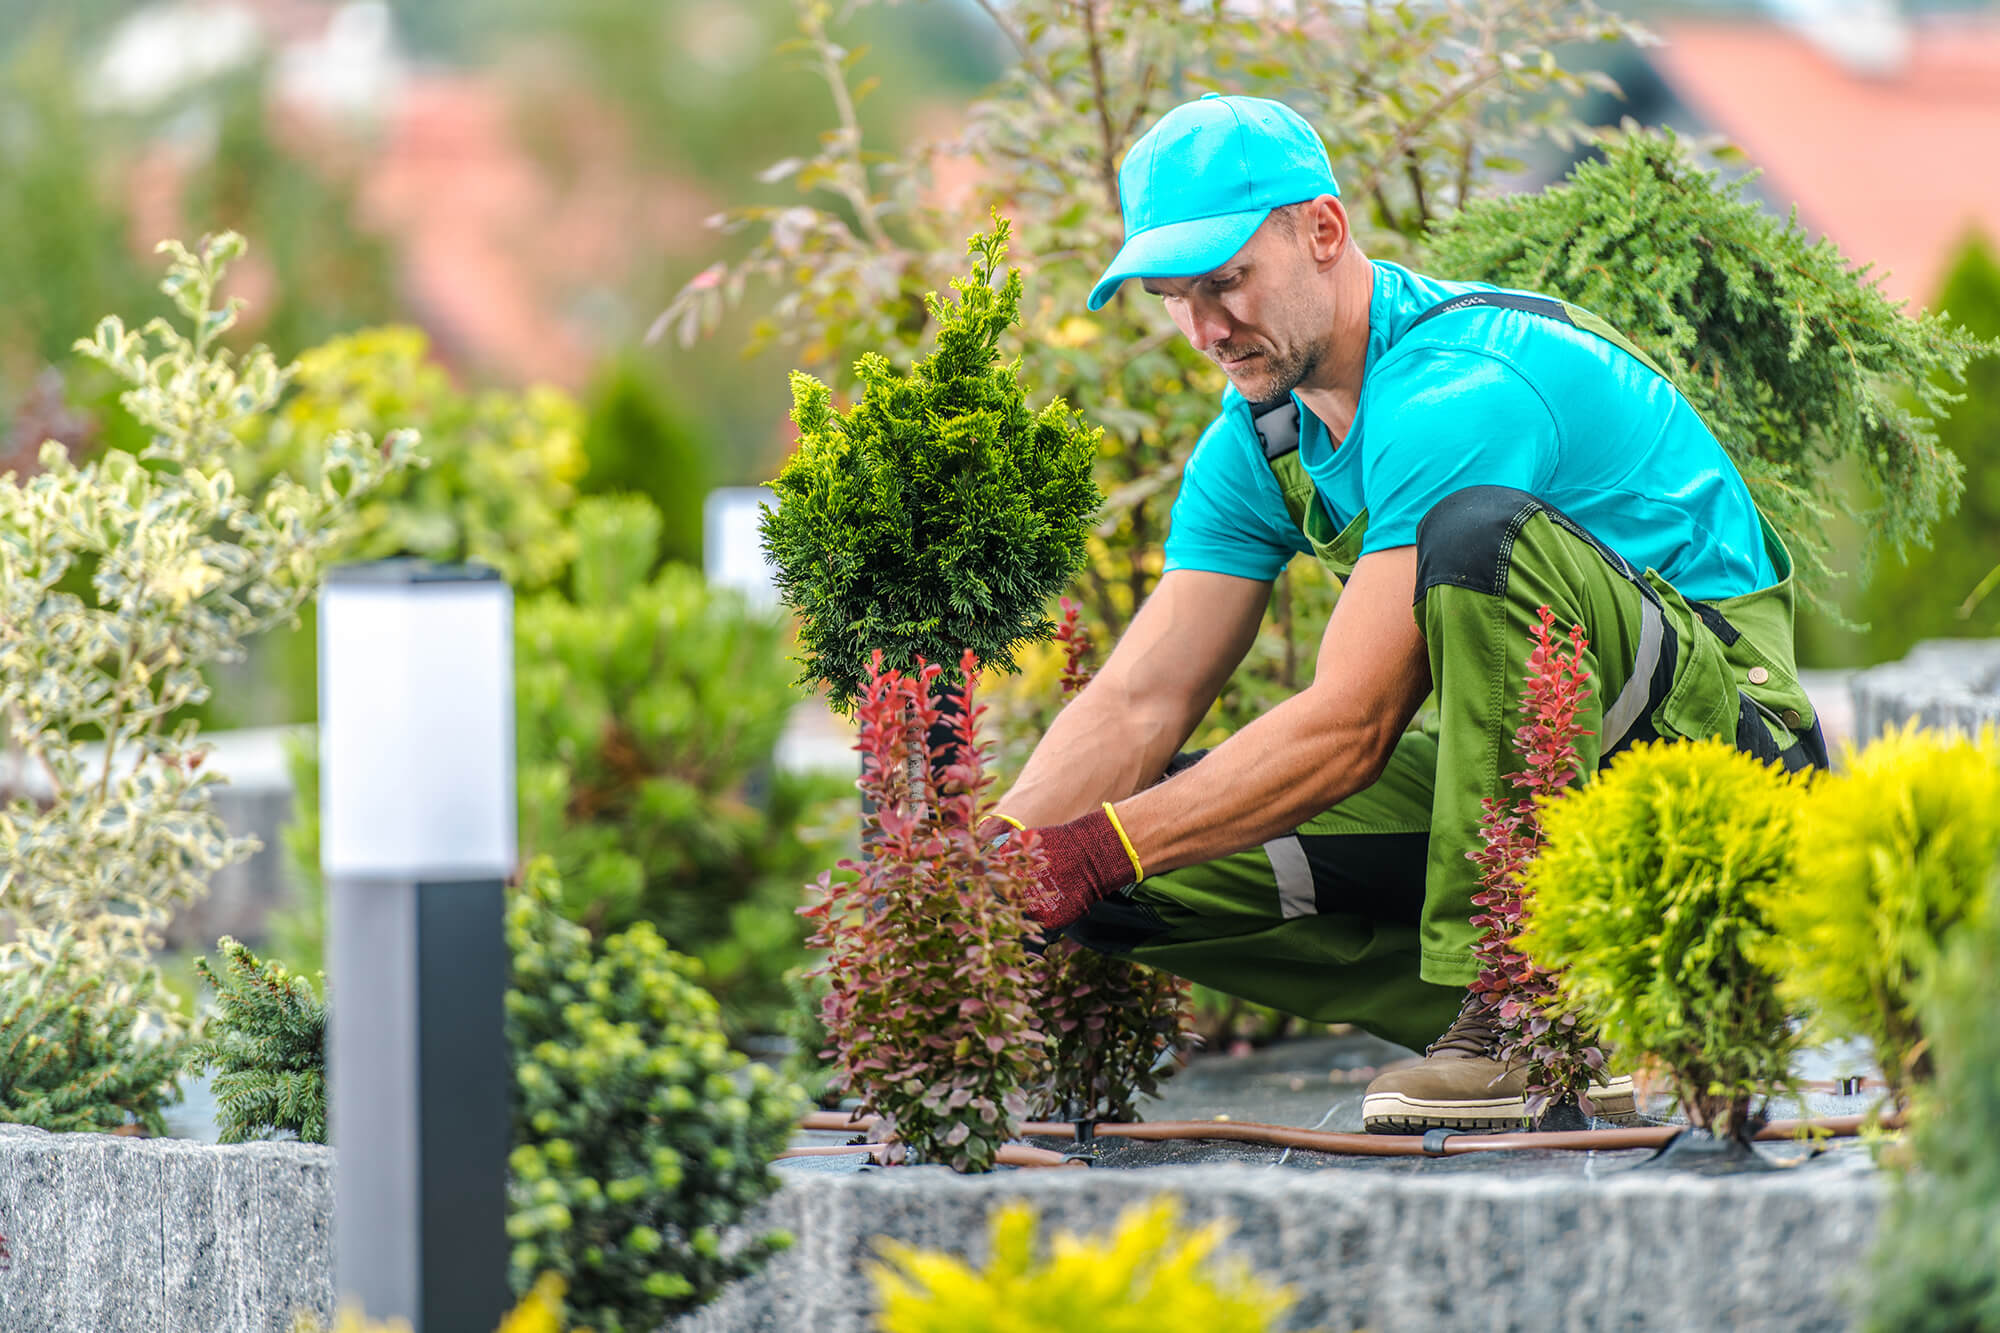 Male landscaper wearing a blue ball cap and blue t-shirt works in garden